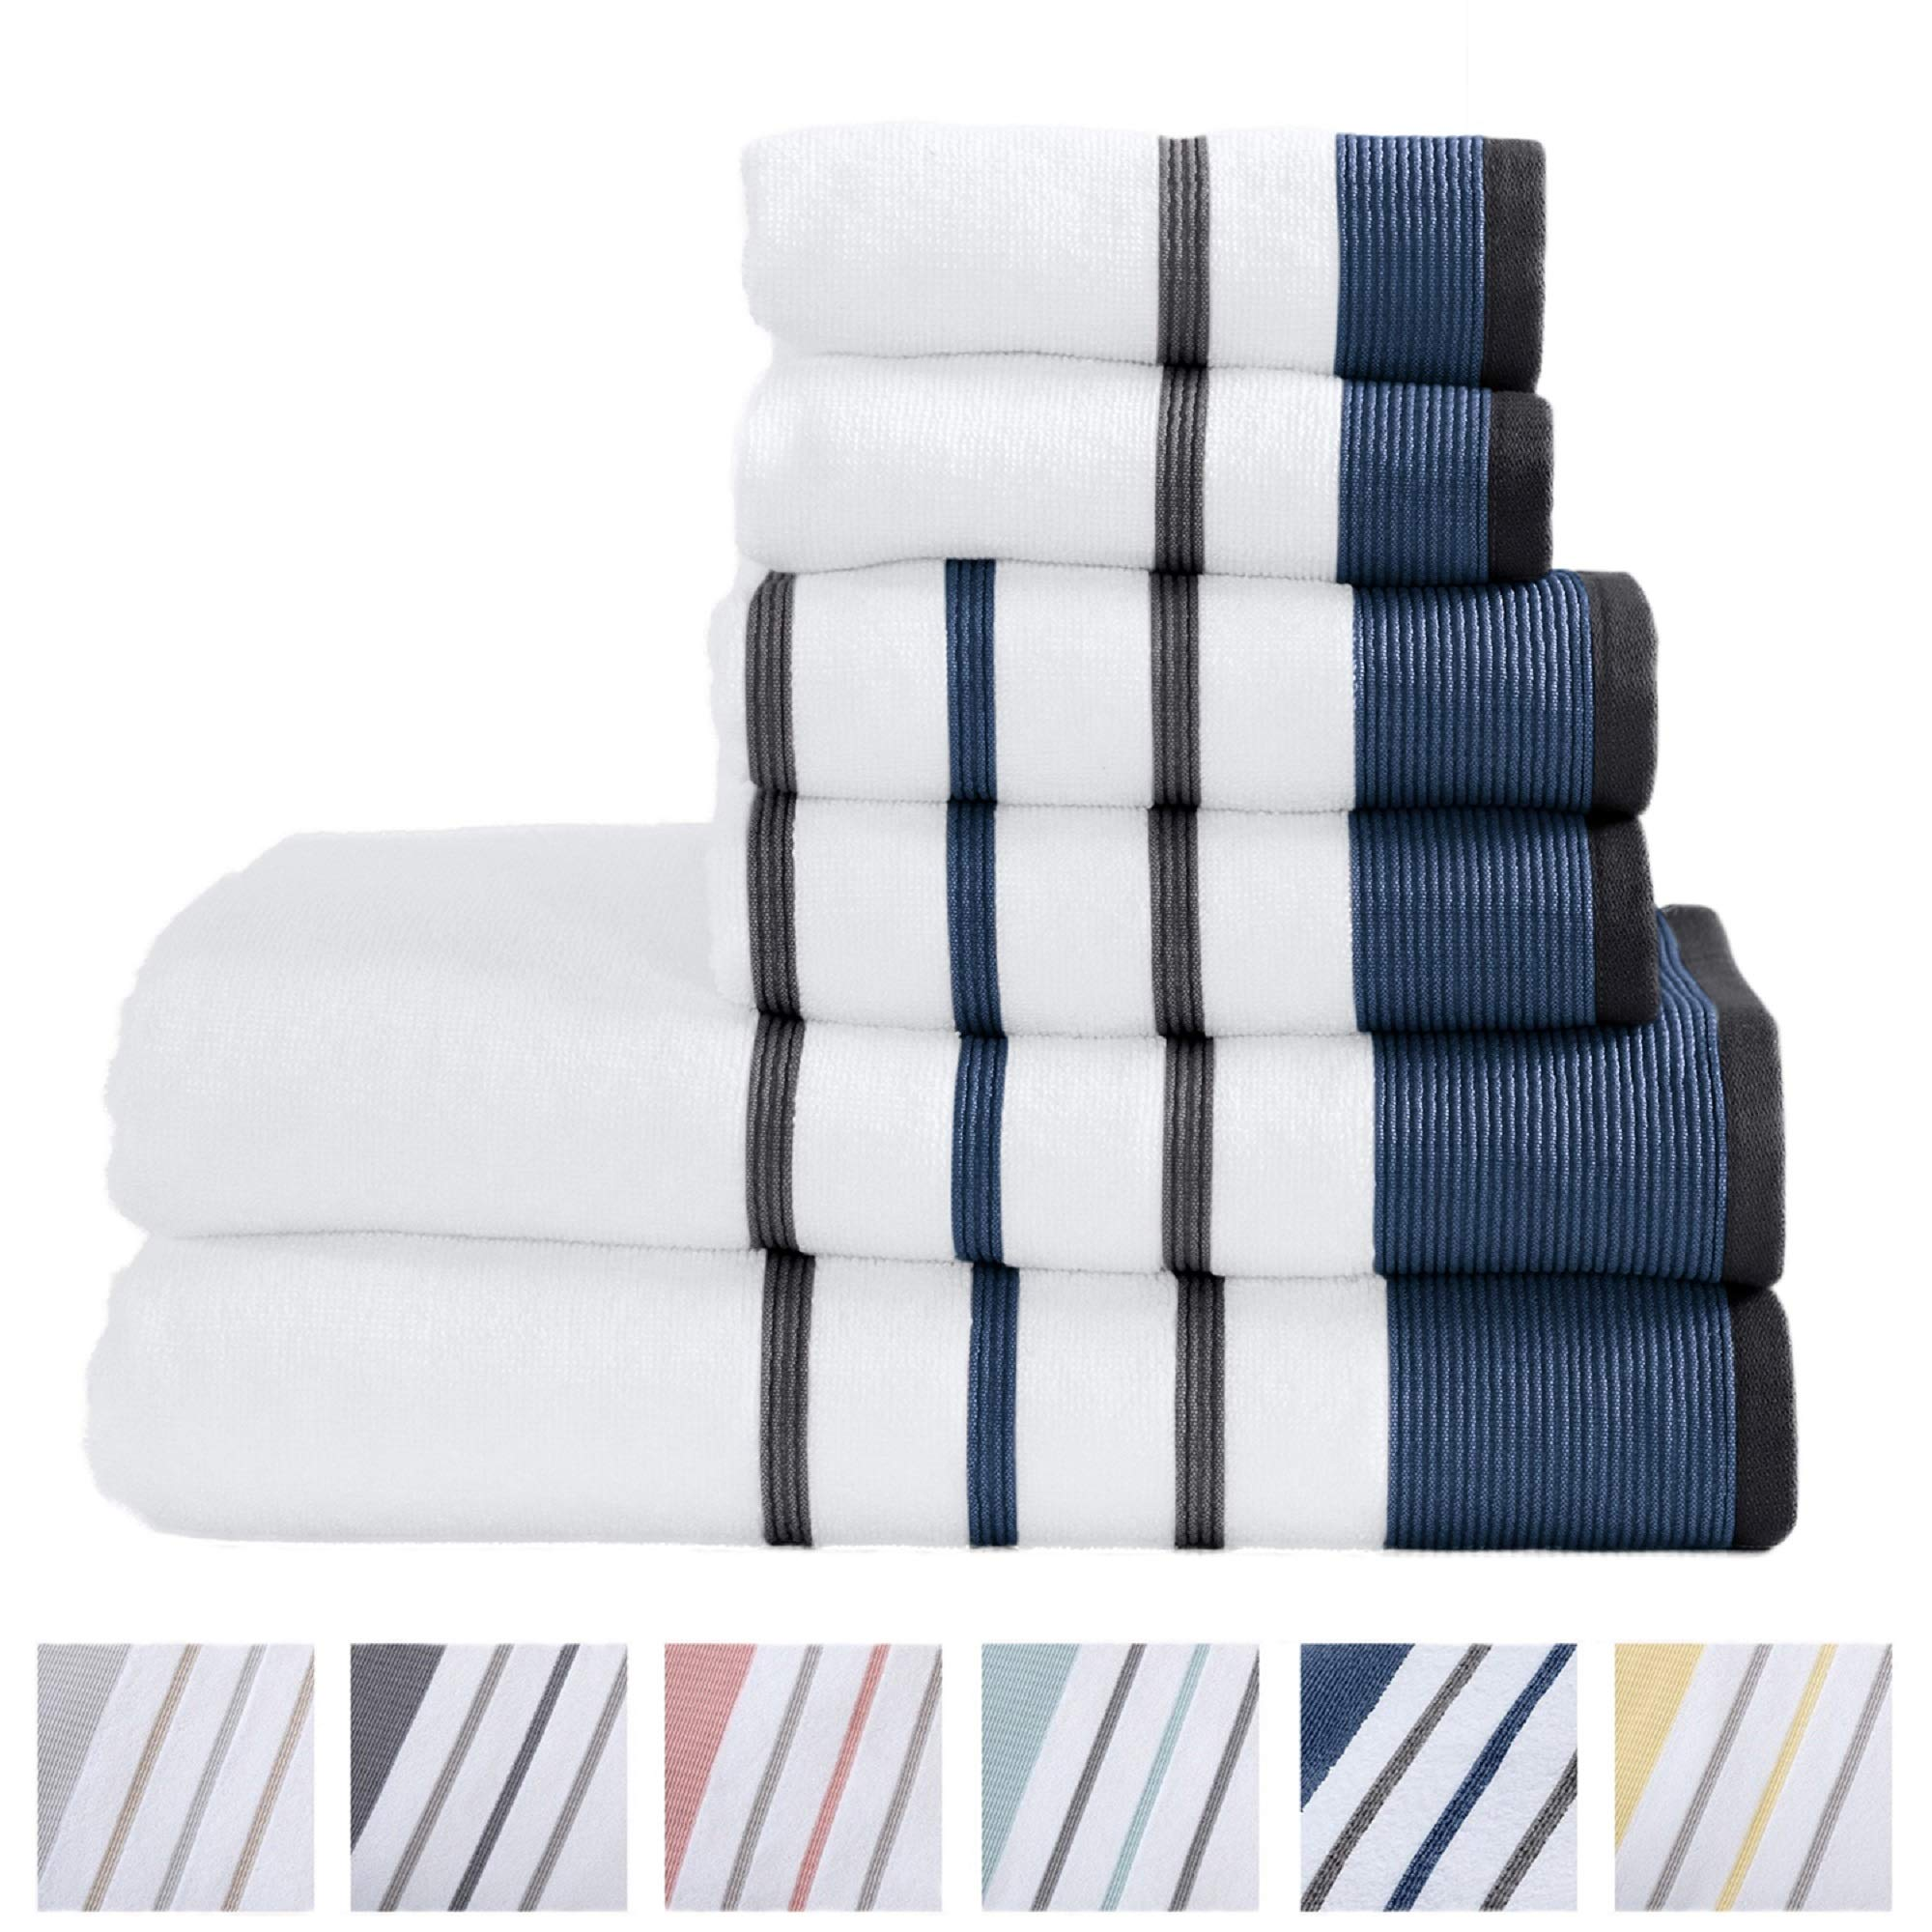 Great Bay Home 6-Piece Luxury Hotel/Spa 100% Turkish Cotton Striped Towel Set, 500 GSM. Includes Bath Towels, Hand Towels and Washcloths. Noelle Collection Brand. (Moroccan Blue/December Sky)